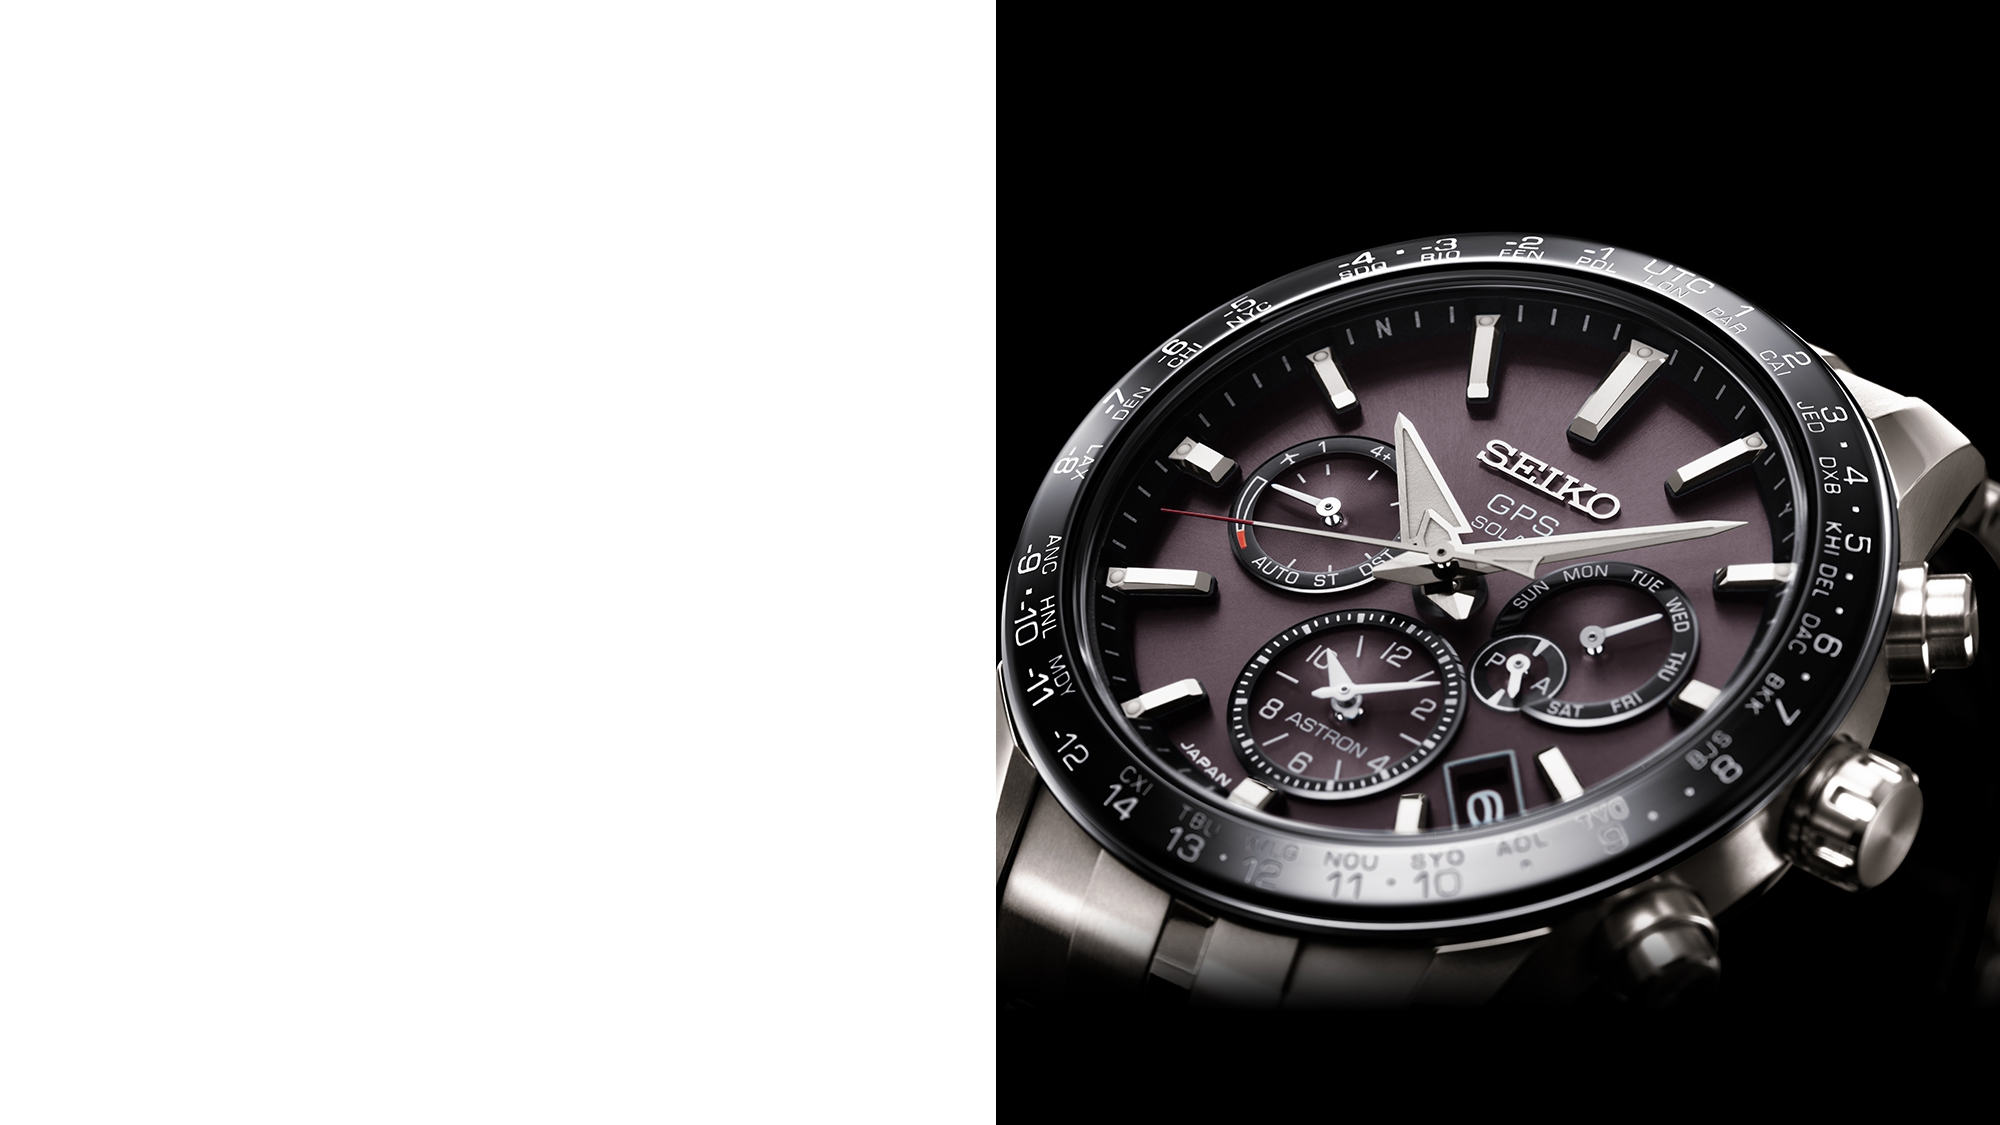 Seiko Astron Astron Brands Seiko Watch Corporation